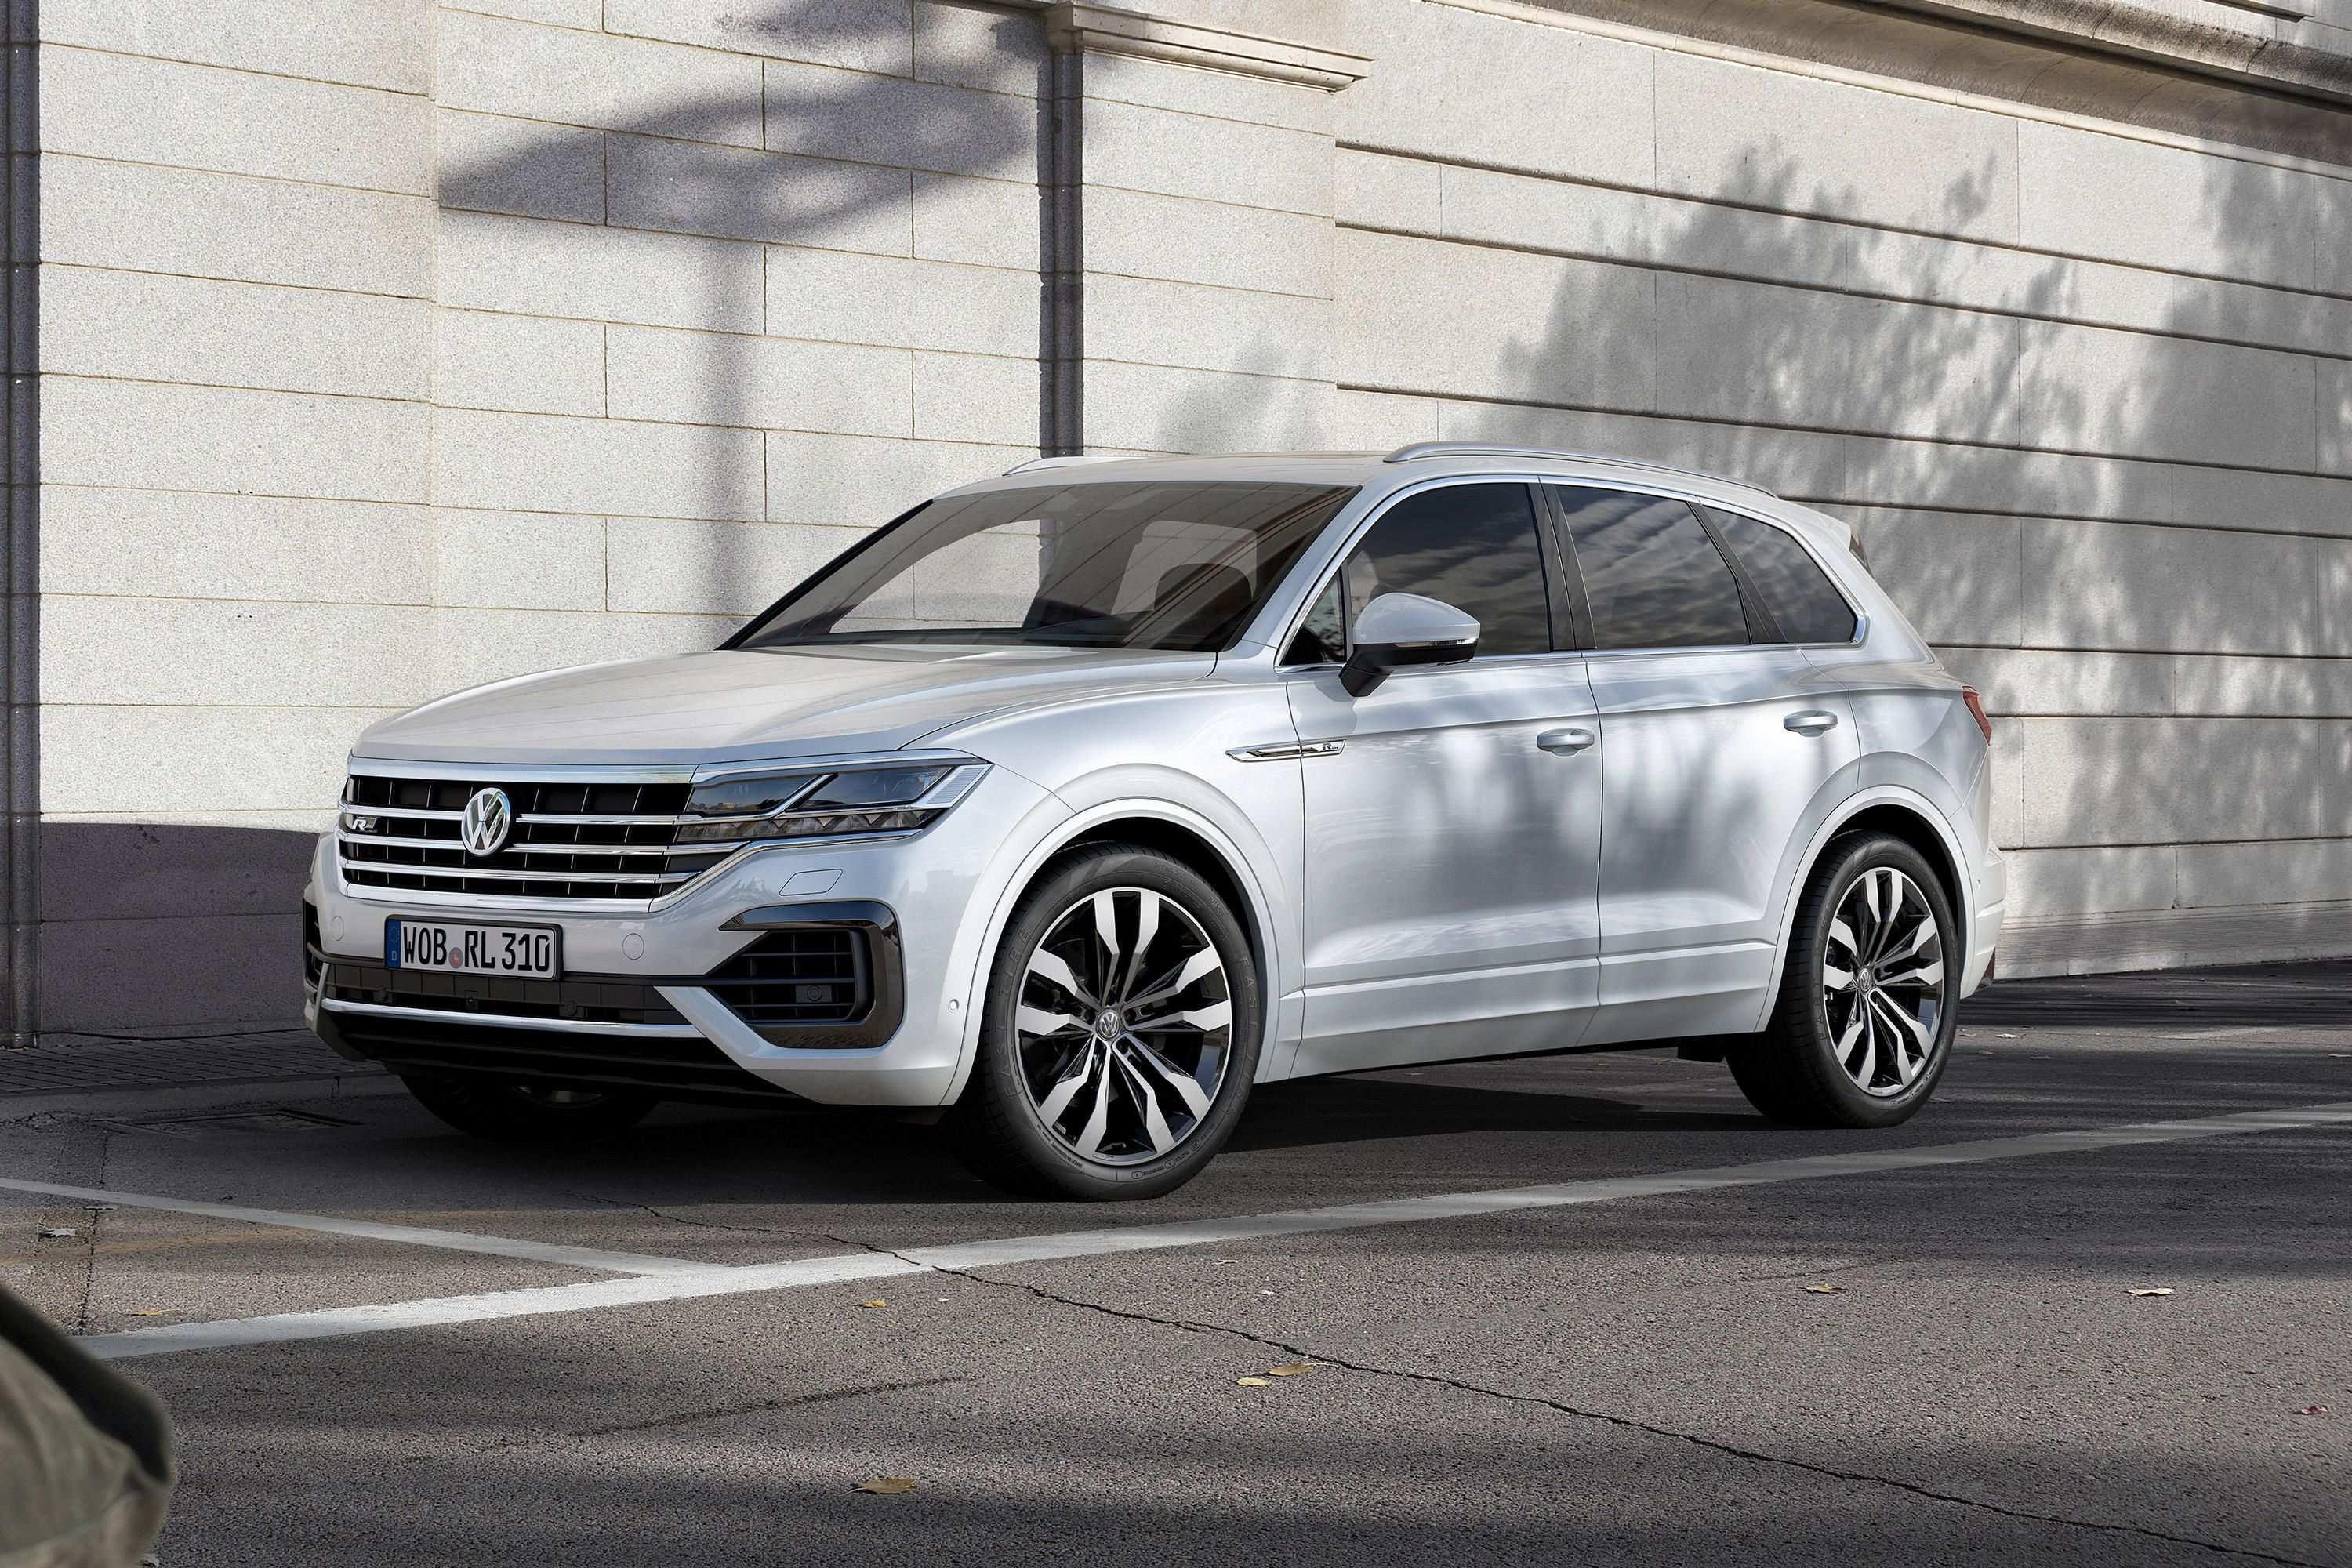 24 New 2019 Volkswagen Touareg Photos